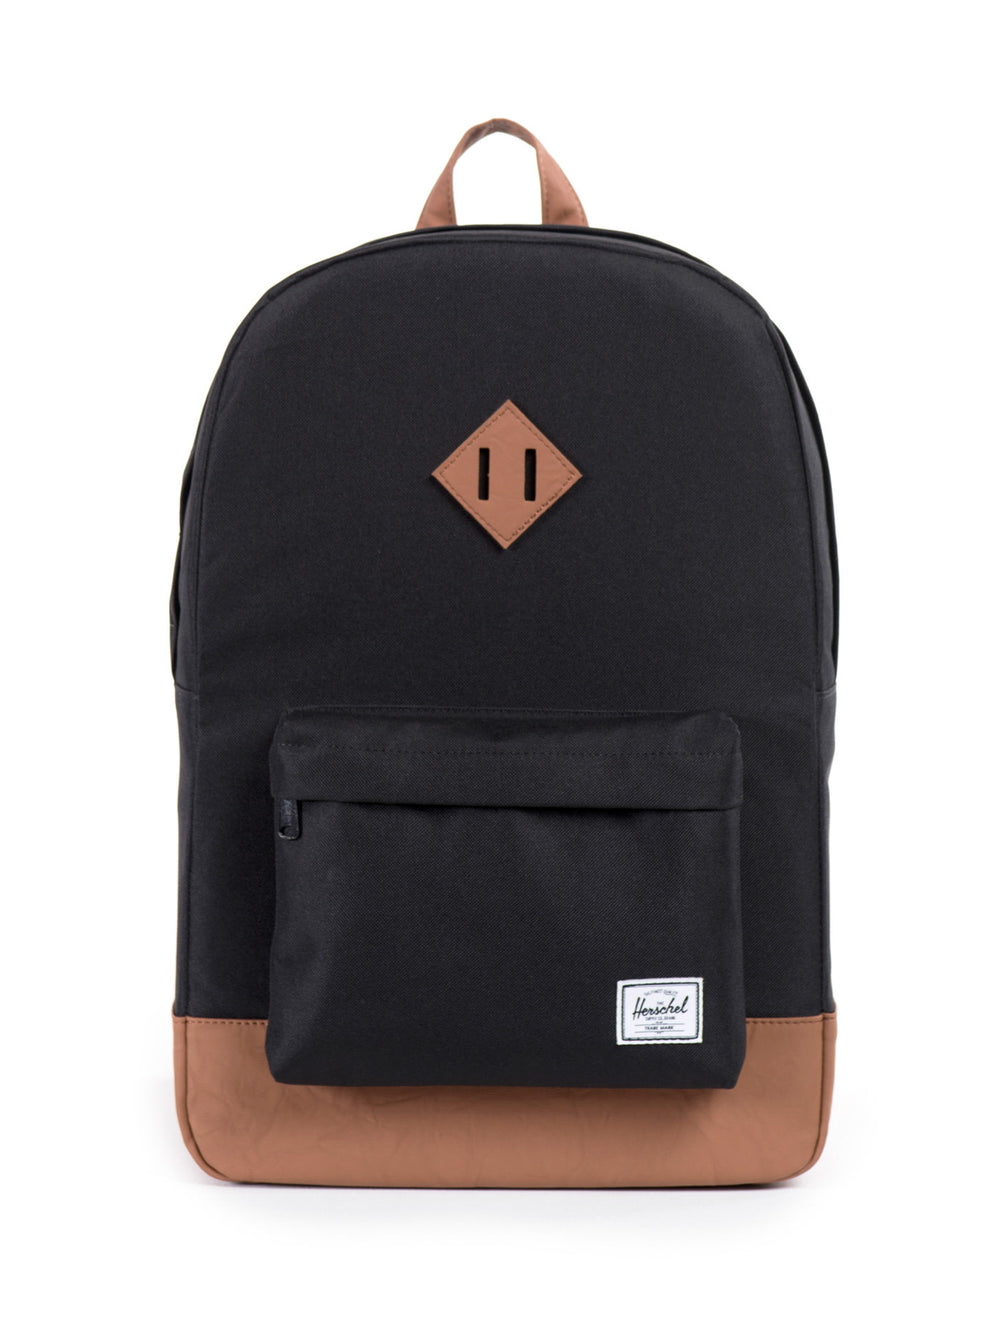 HERITAGE 21.5L BACKPACK - BLK/TAN